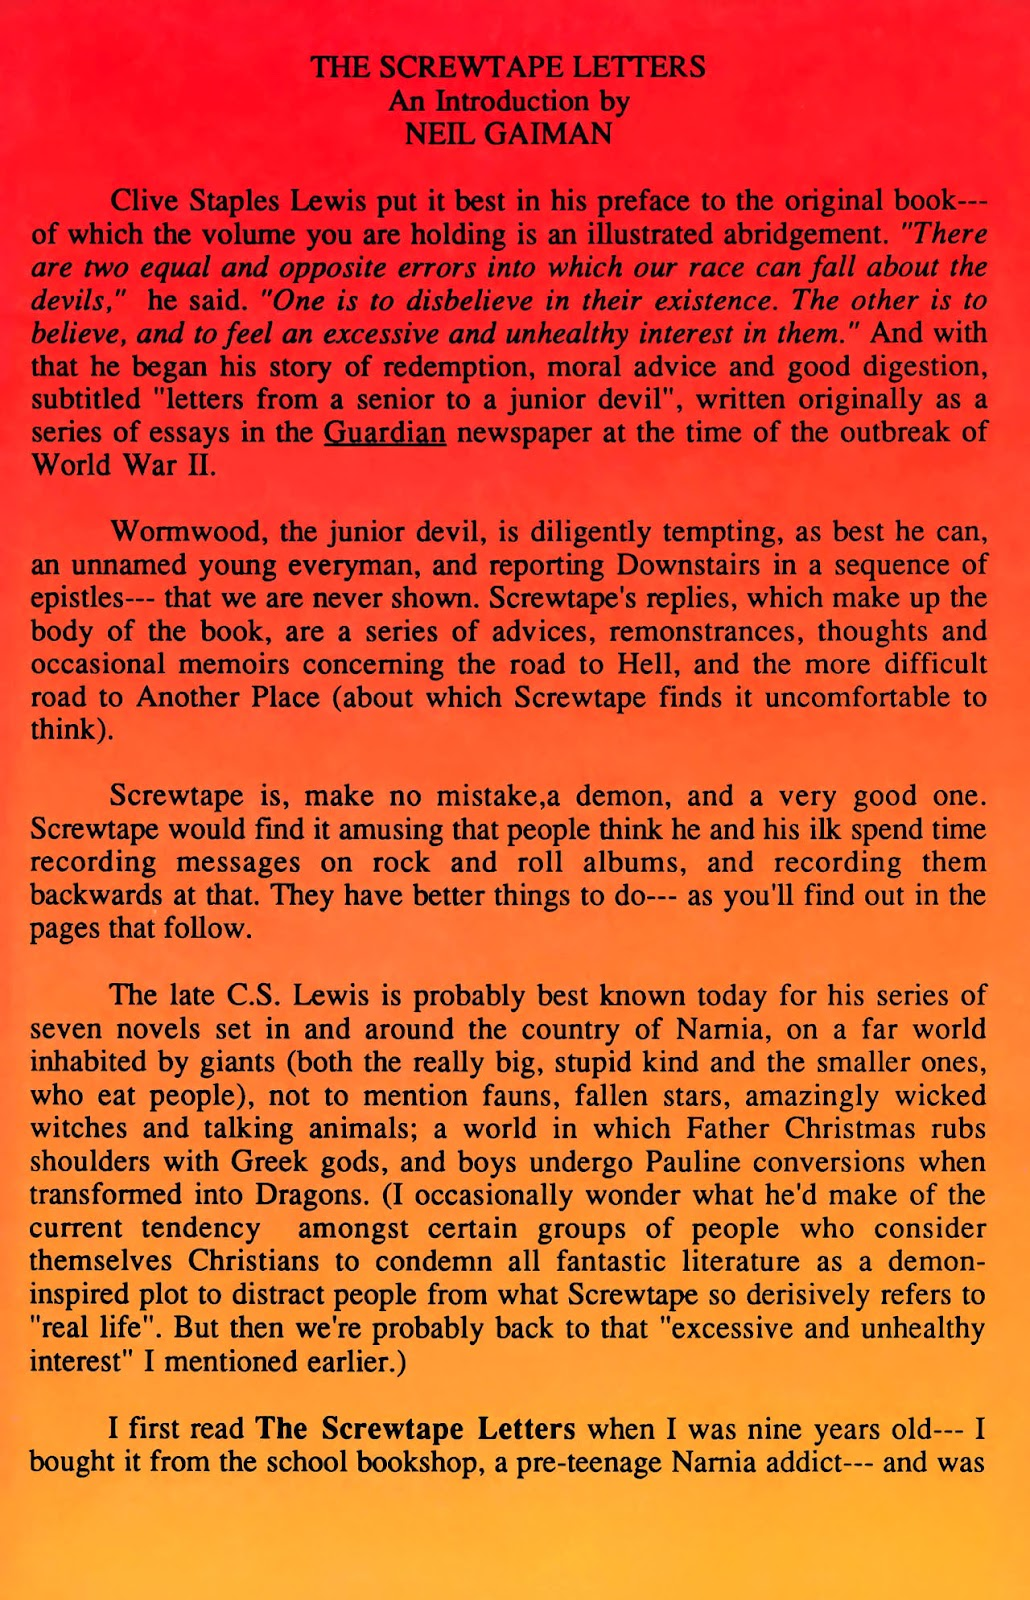 the screwtape letters essay Essay topic 1 lewis contends that christians are generally intelligent, reasoning people capable of understanding god's plan and god's will screwtape advises that a basic devil tactic is to shift christian focus to the mundane thereby lessening or blunting the thoughts of a human.